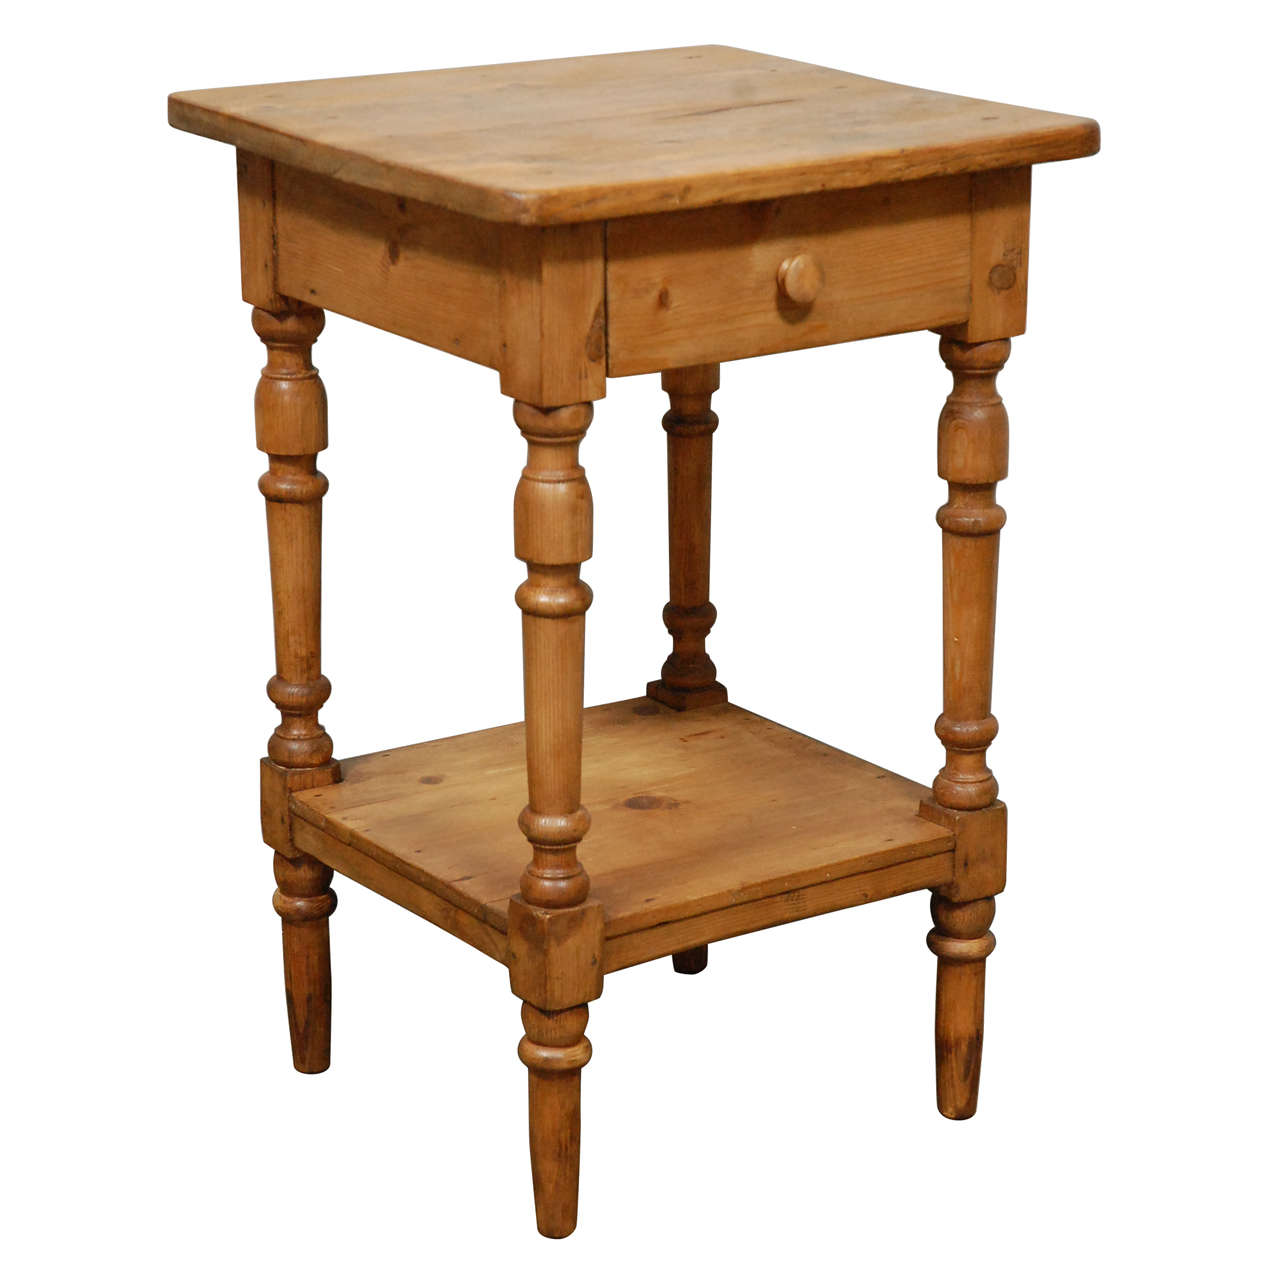 Antique Turned Leg Side Table Nightstand At 1stdibs